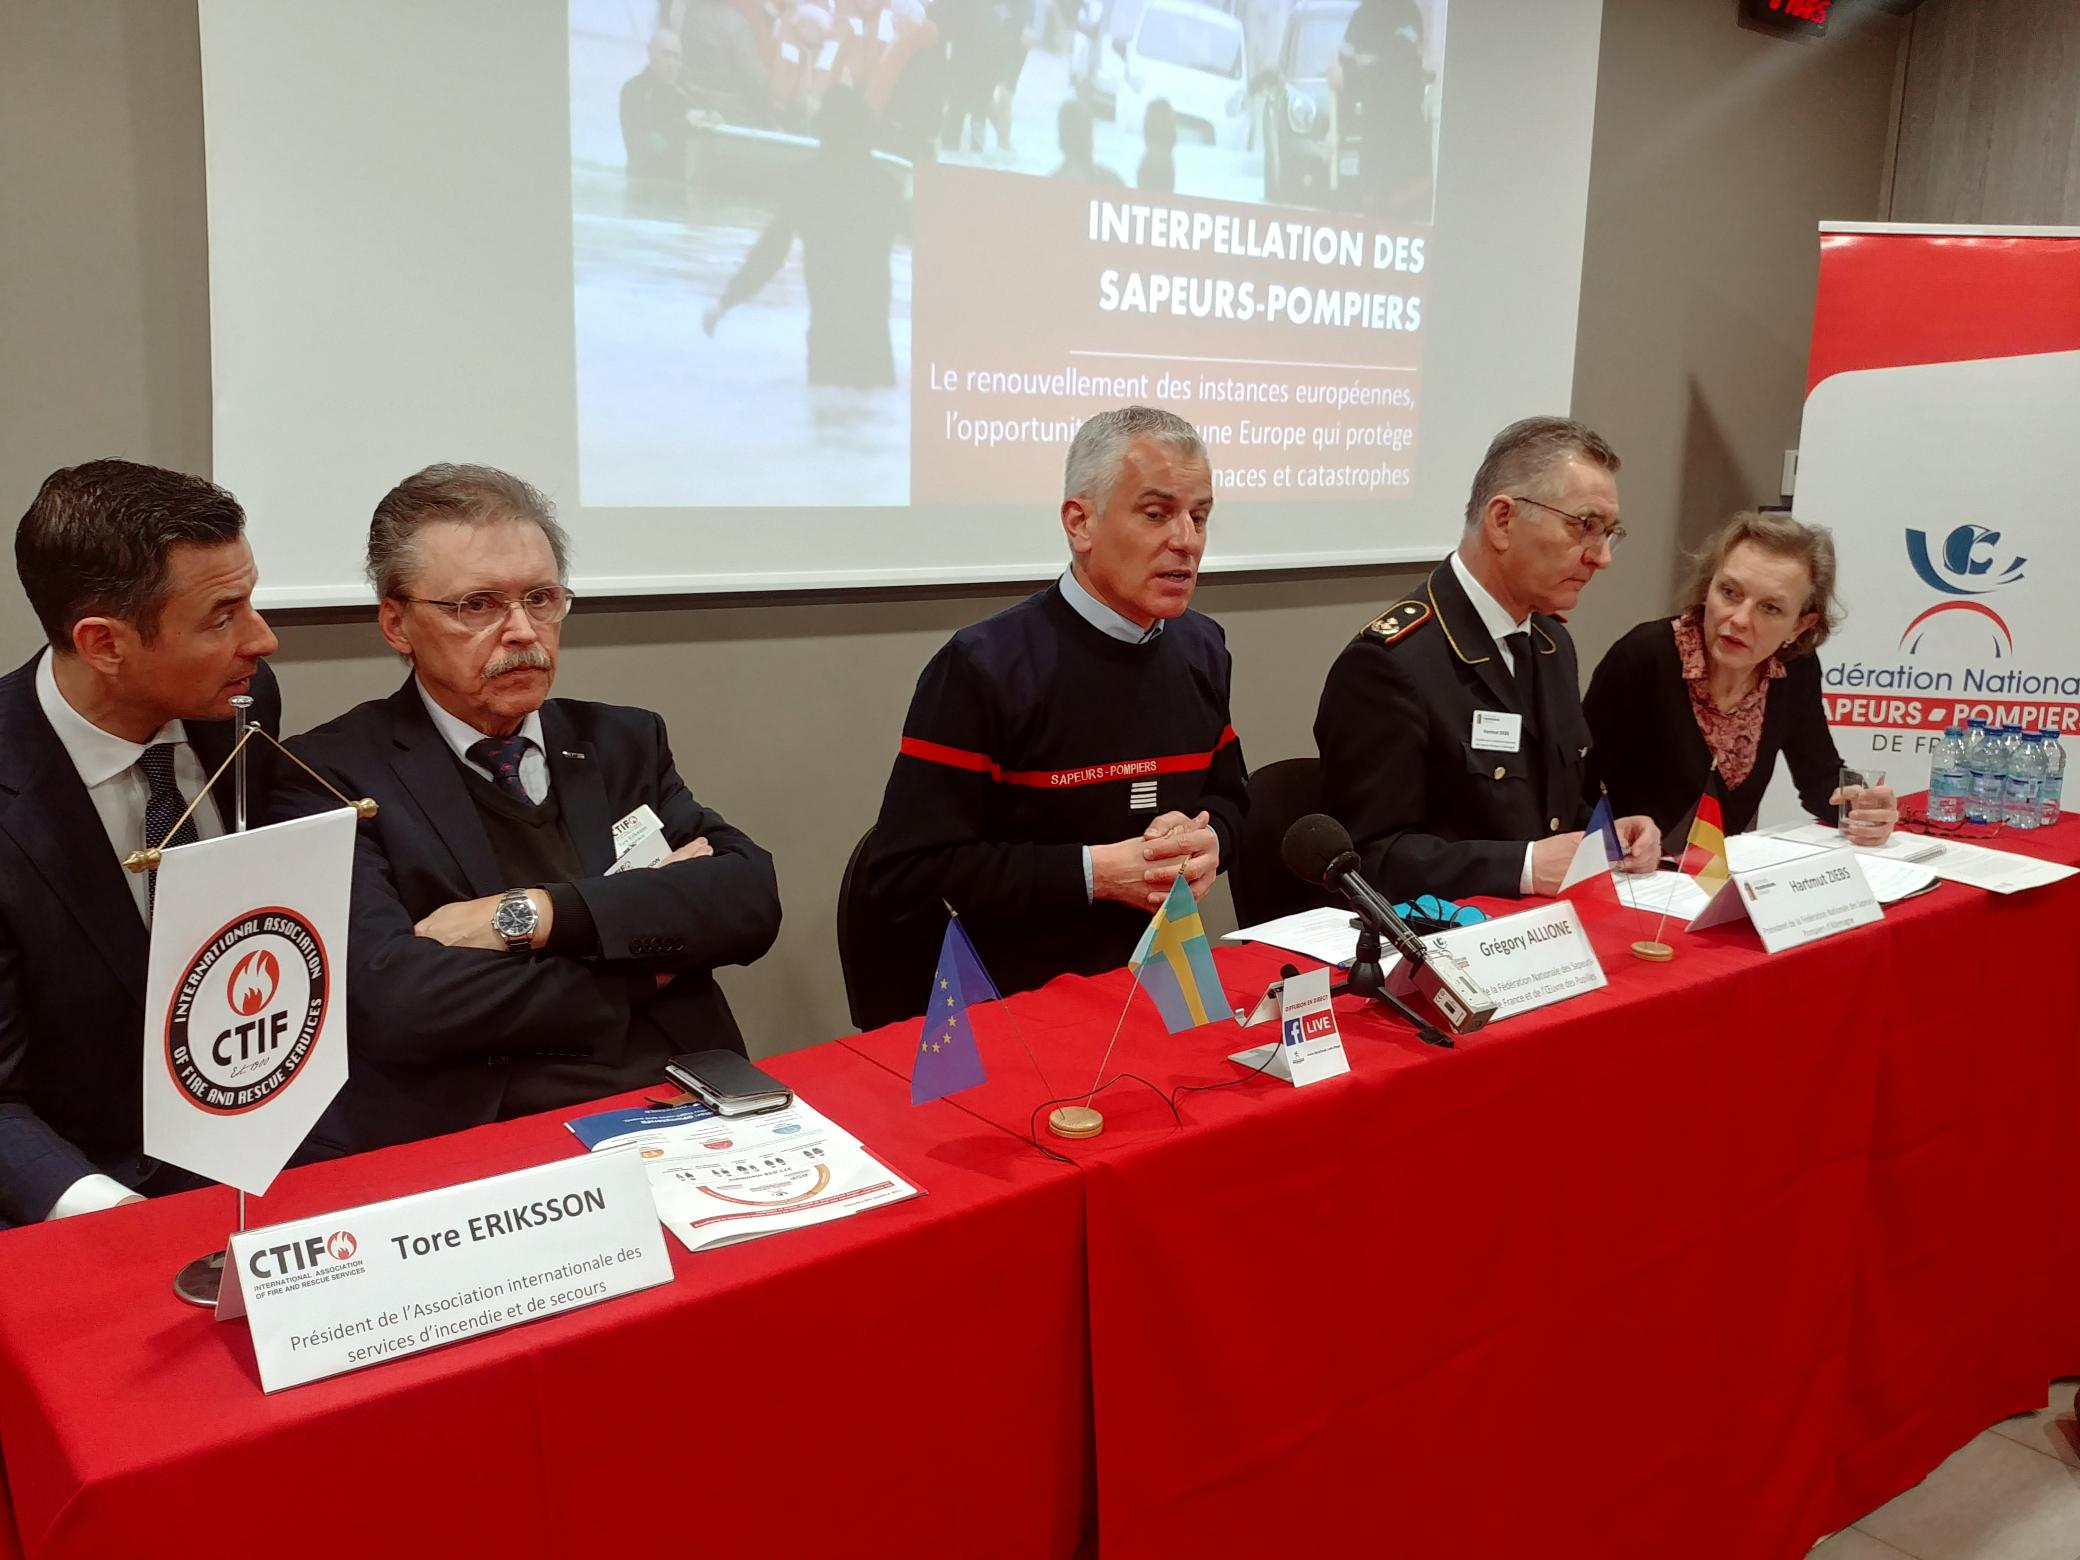 CTIF President Tore Eriksson at a Press Conference in Paris on March 6 2019, about the effects of the European Working Time Directive on voluntary firefighters.